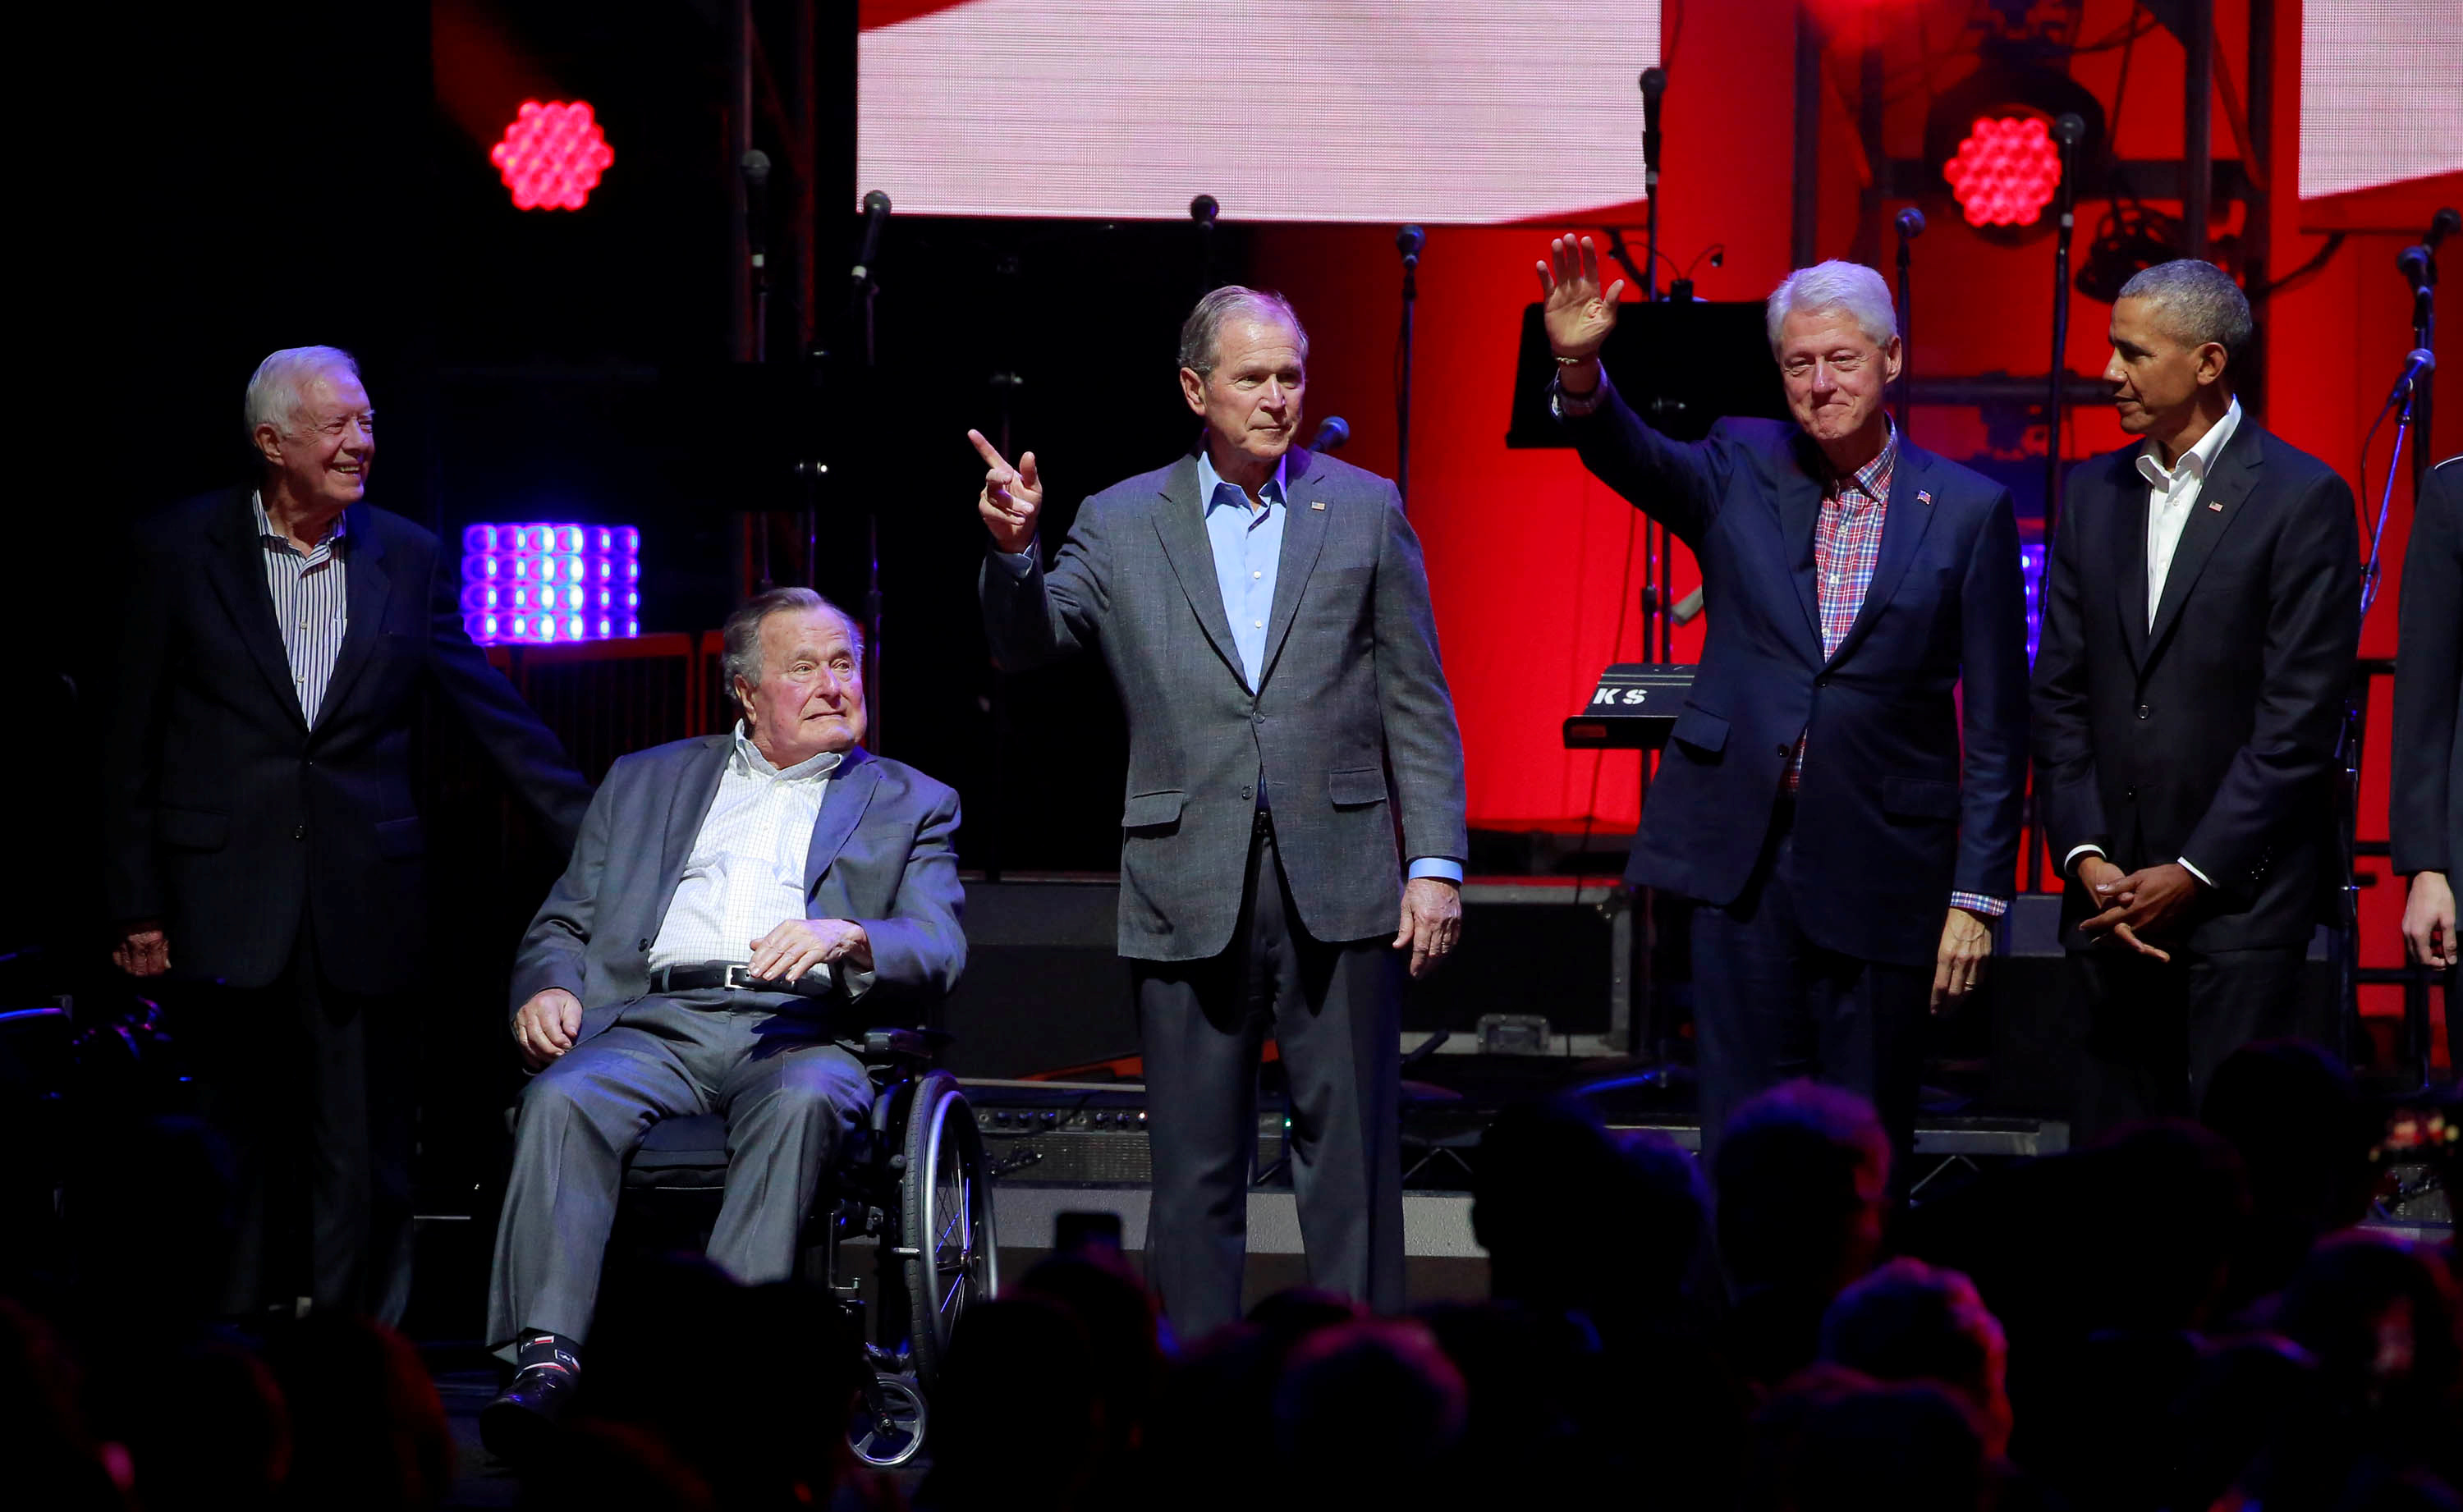 Hurricanes: Five former US Presidents attend Texas Concert